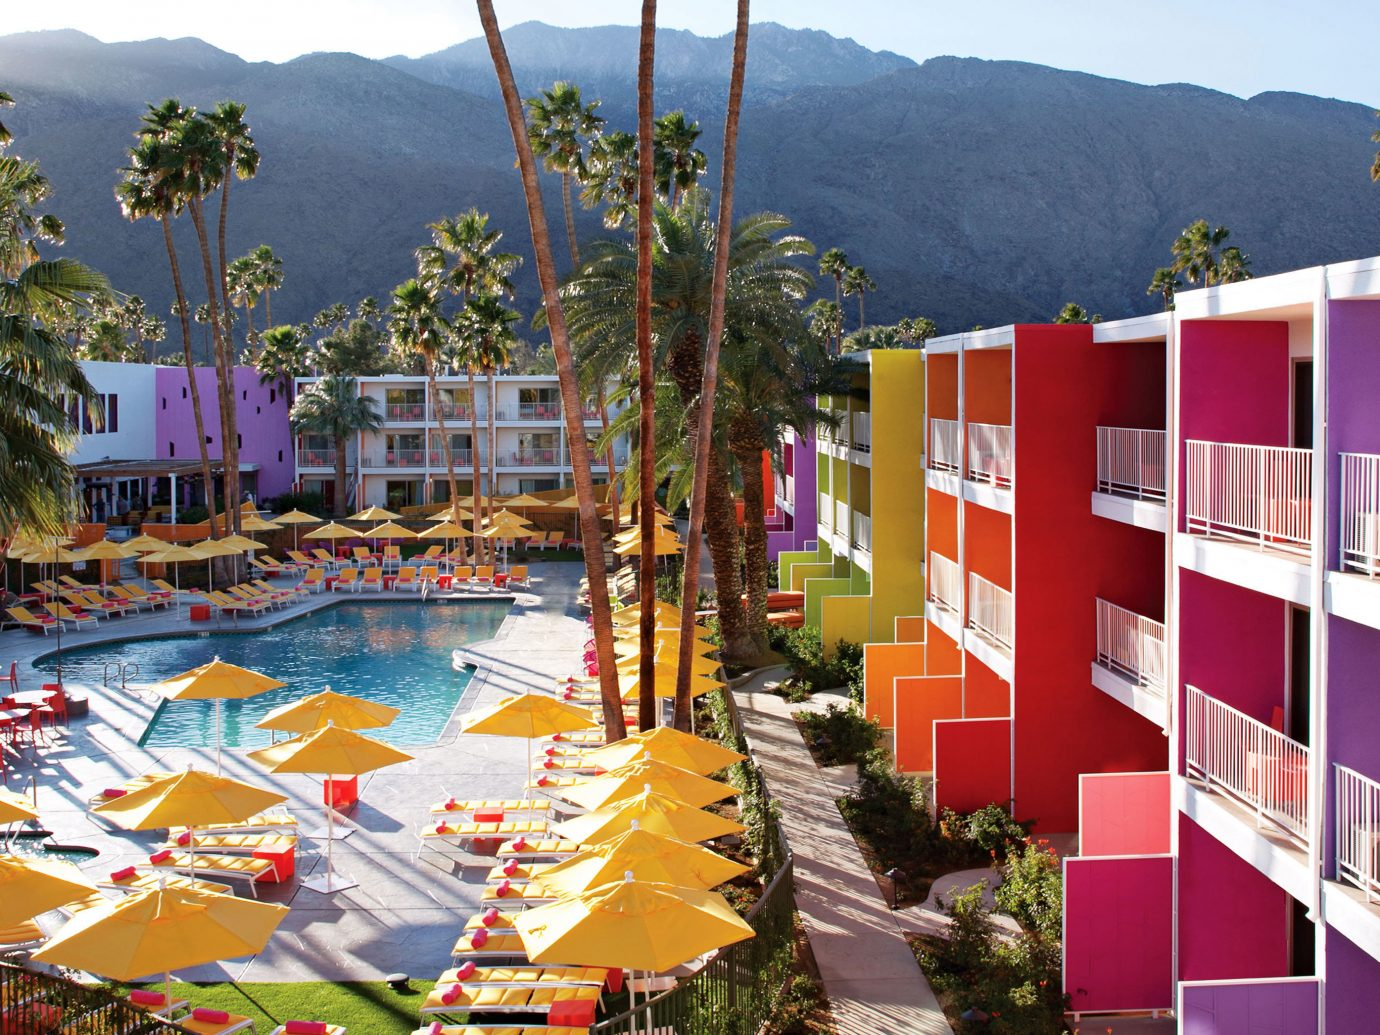 Aerial view of the pool at Saguaro Palm Springs in Palm Springs